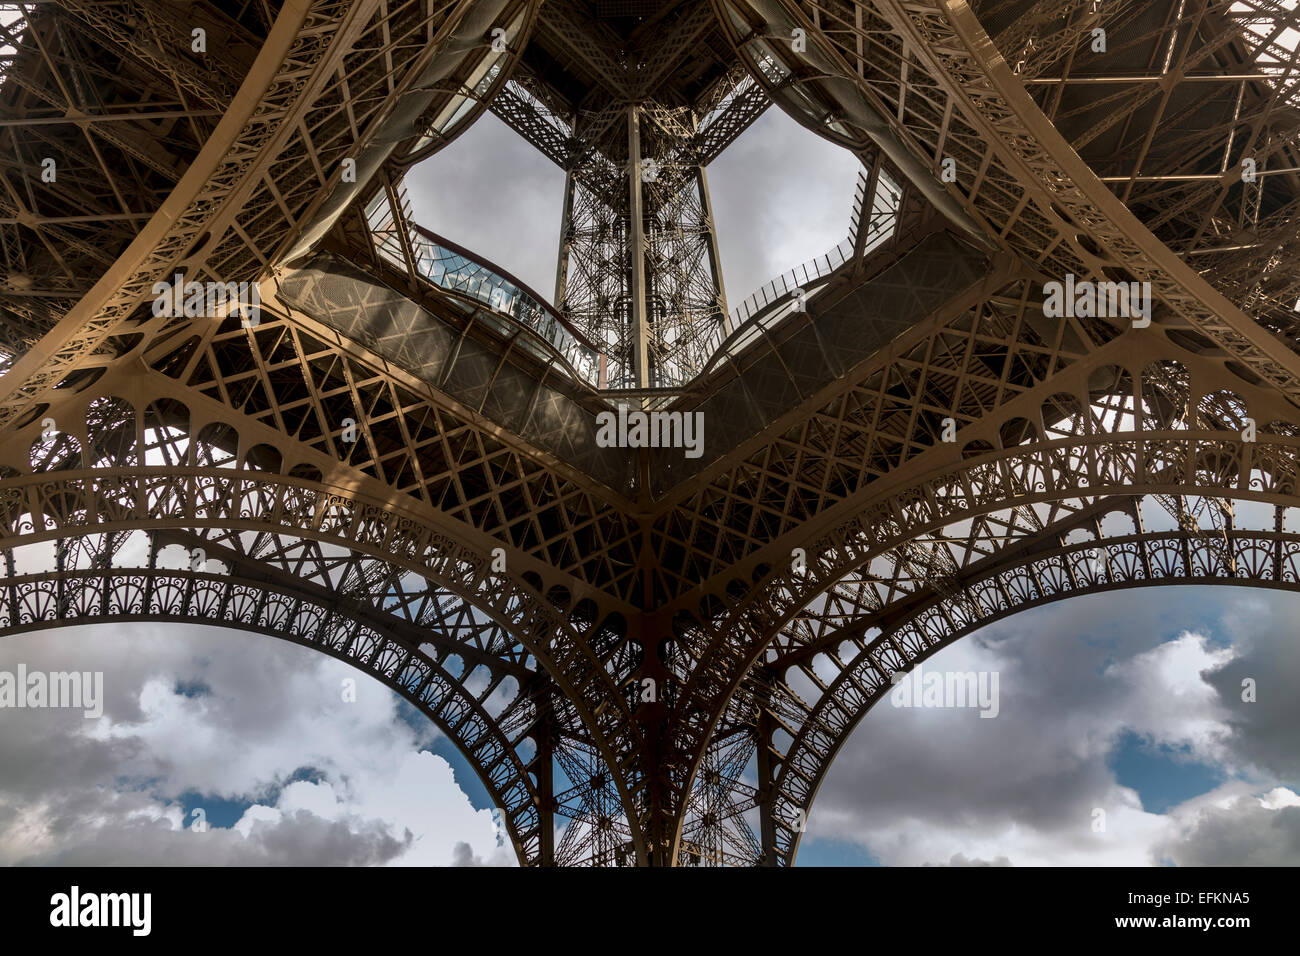 Low angle symmetrical view of Eiffel Tower, Paris, France - Stock Image